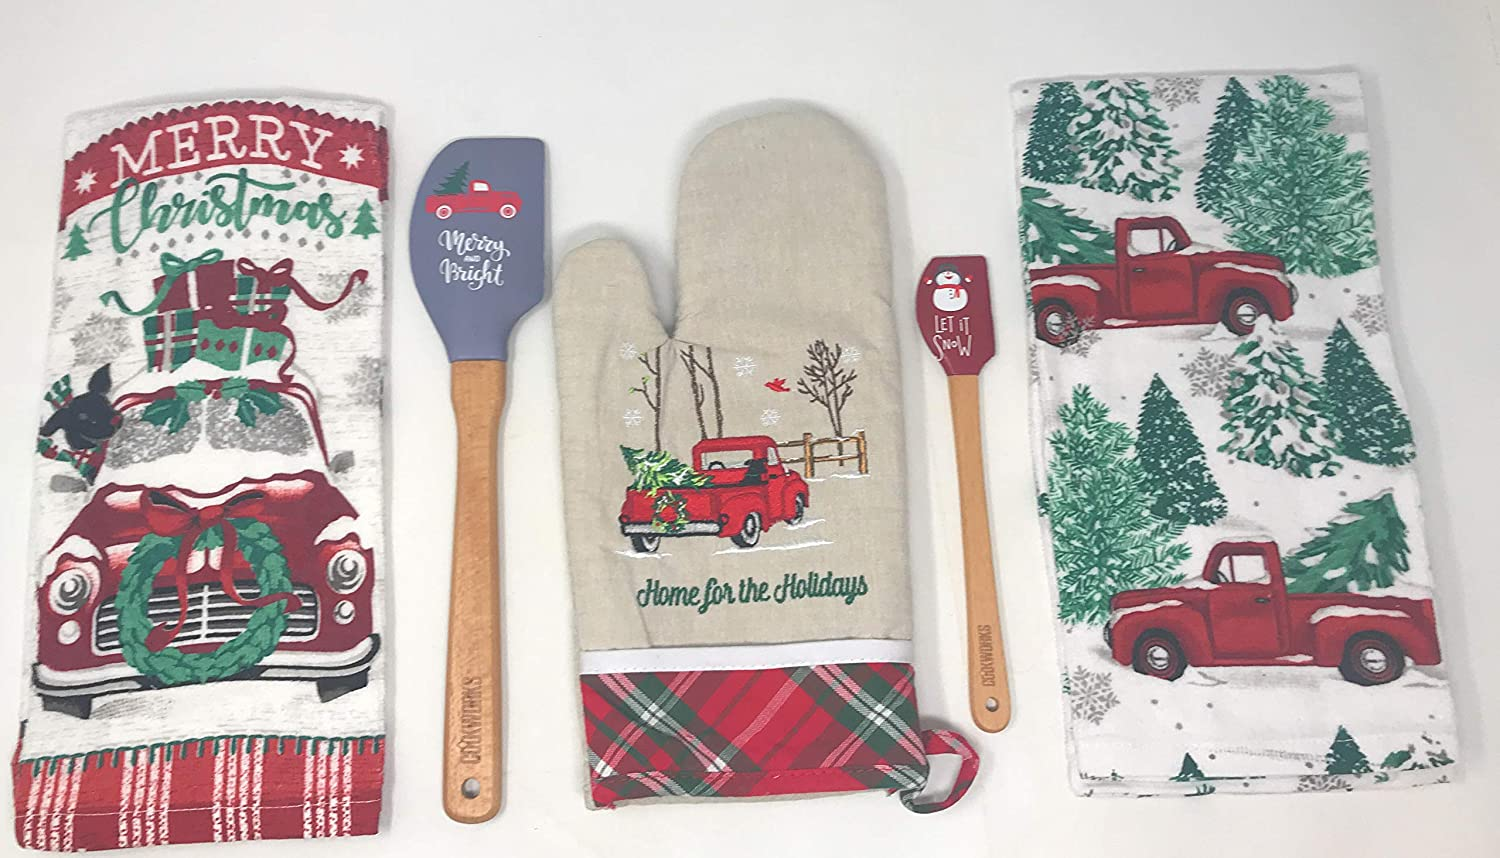 Vintage Red Truck Christmas Set, Includes 2 Kitchen Towels, a Pack of Spatulas, and an Oven Mitt. Bundle of 5